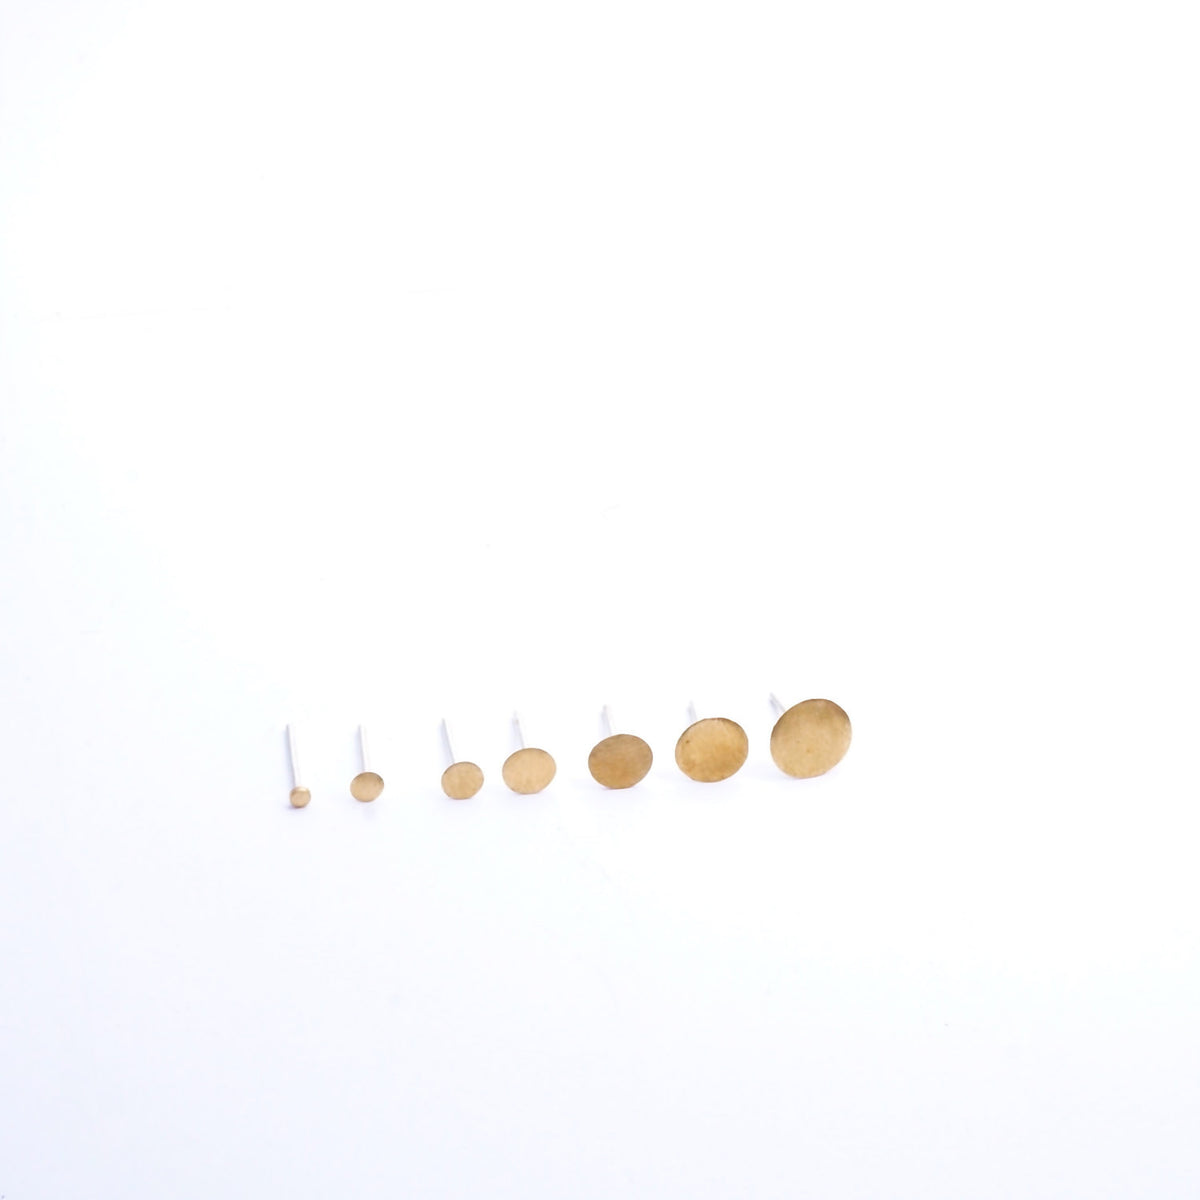 Distinctive Elegance Hand-Made Solid 14k Gold Circle Stud Earrings - 0003 - Virginia Wynne Designs